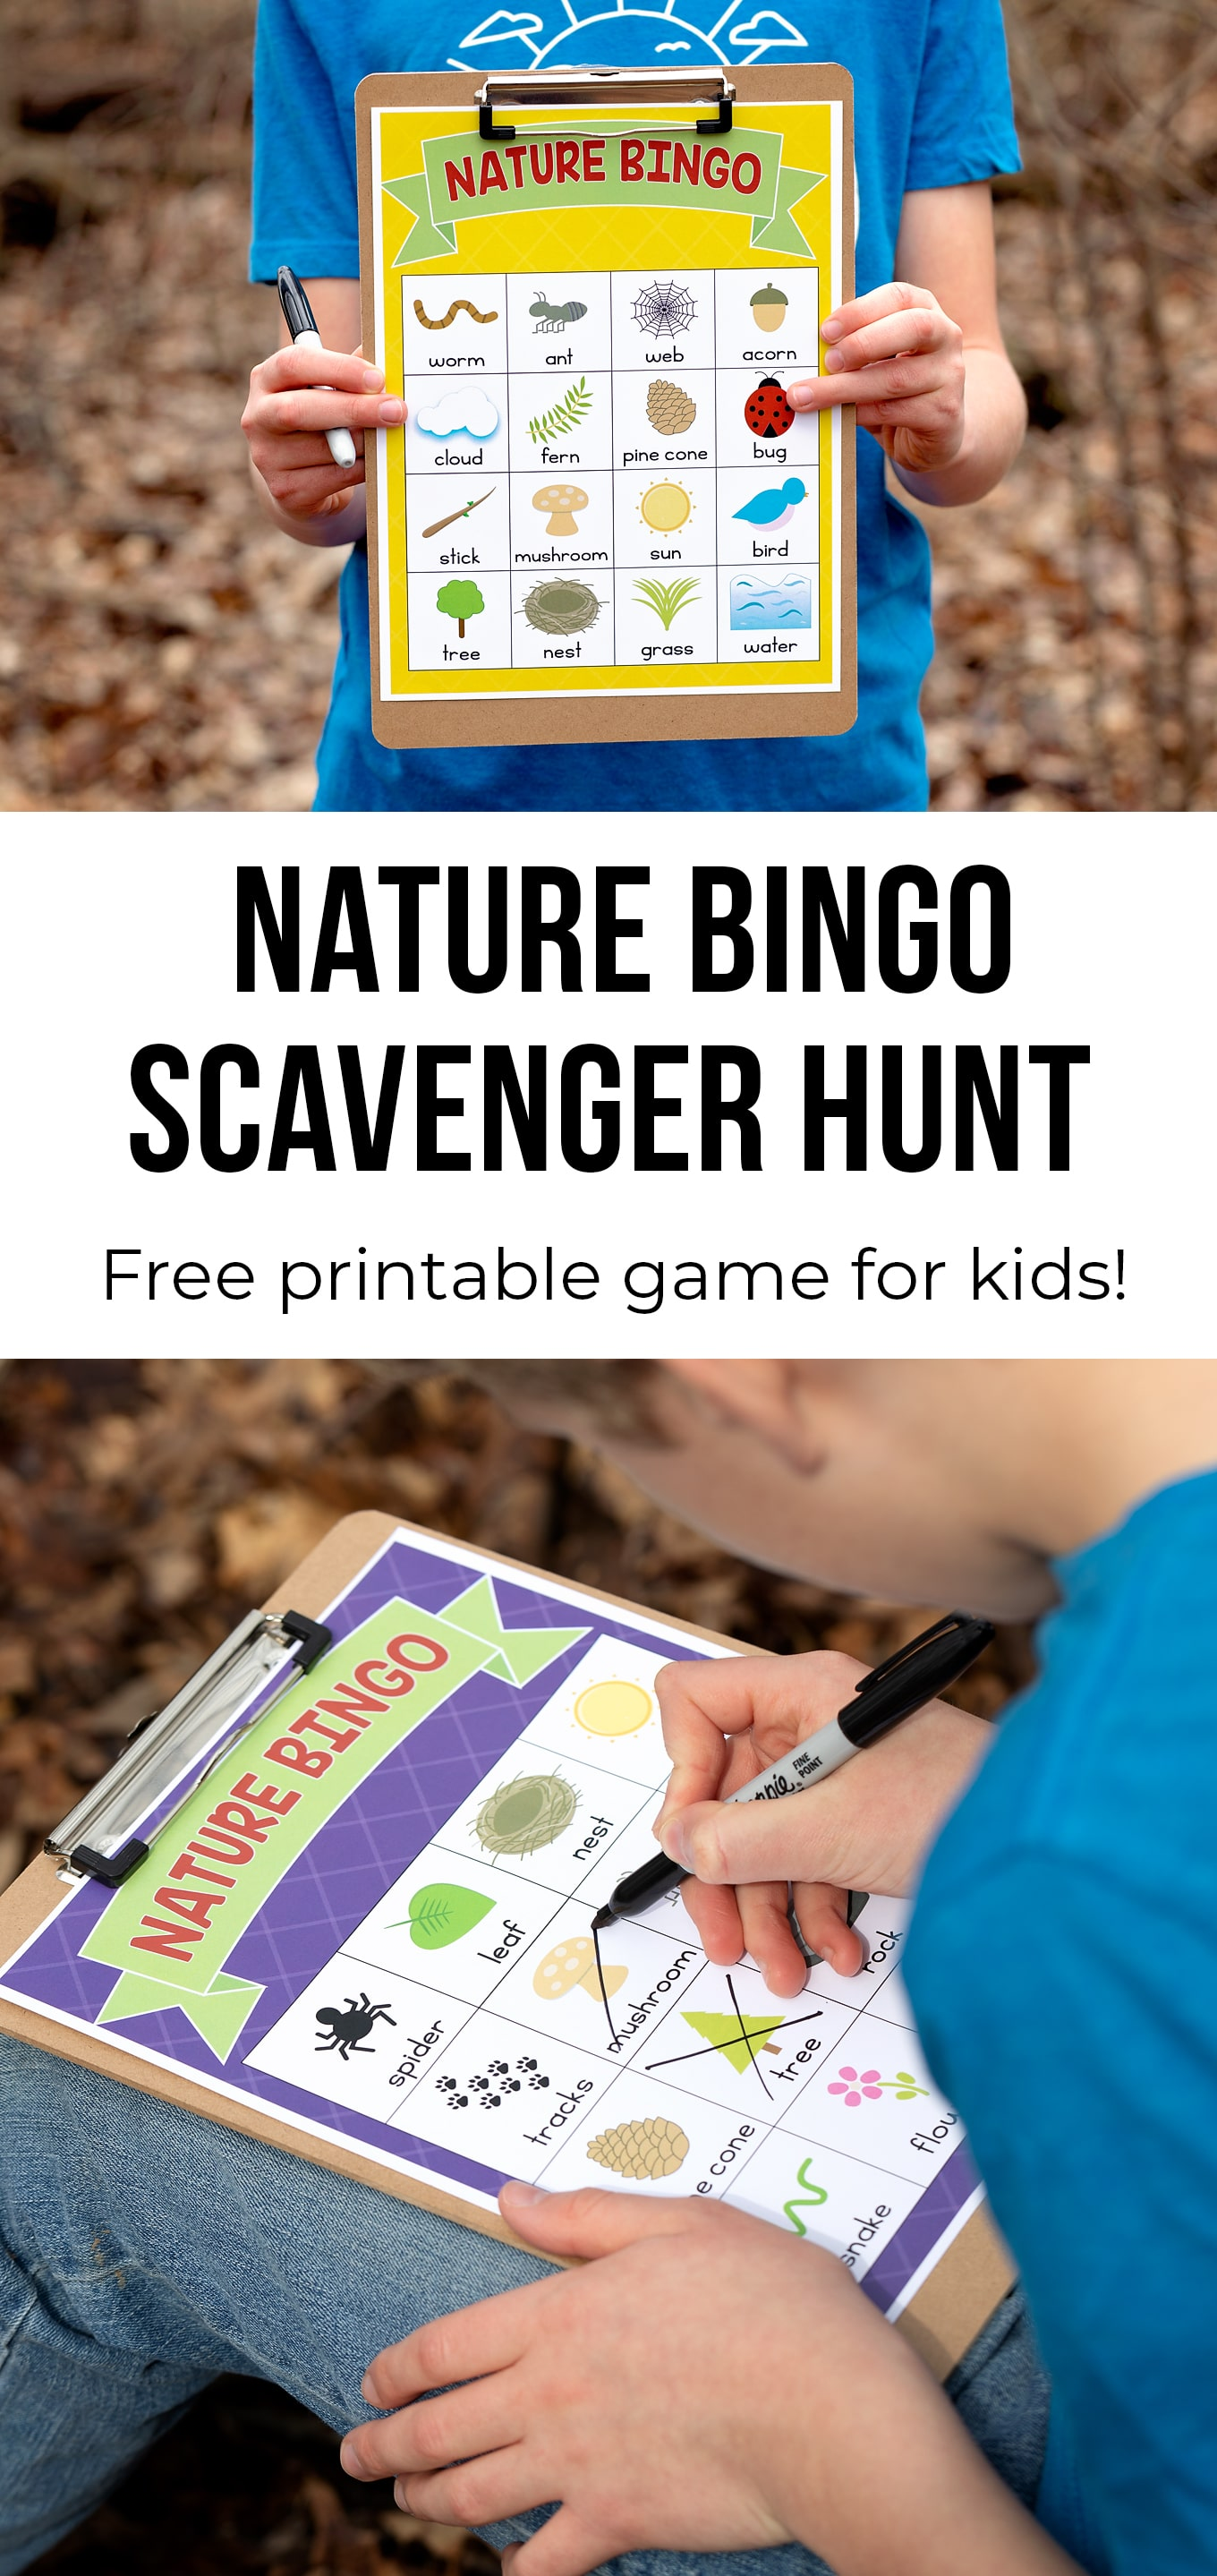 Explore the outdoors and stay active with this free printable Nature Scavenger Hunt for kids. It's perfect for backyards, parks, and neighborhood walks! #naturescavengerhunt #scavengerhunt #outdooractivities #kidsactivities via @firefliesandmudpies